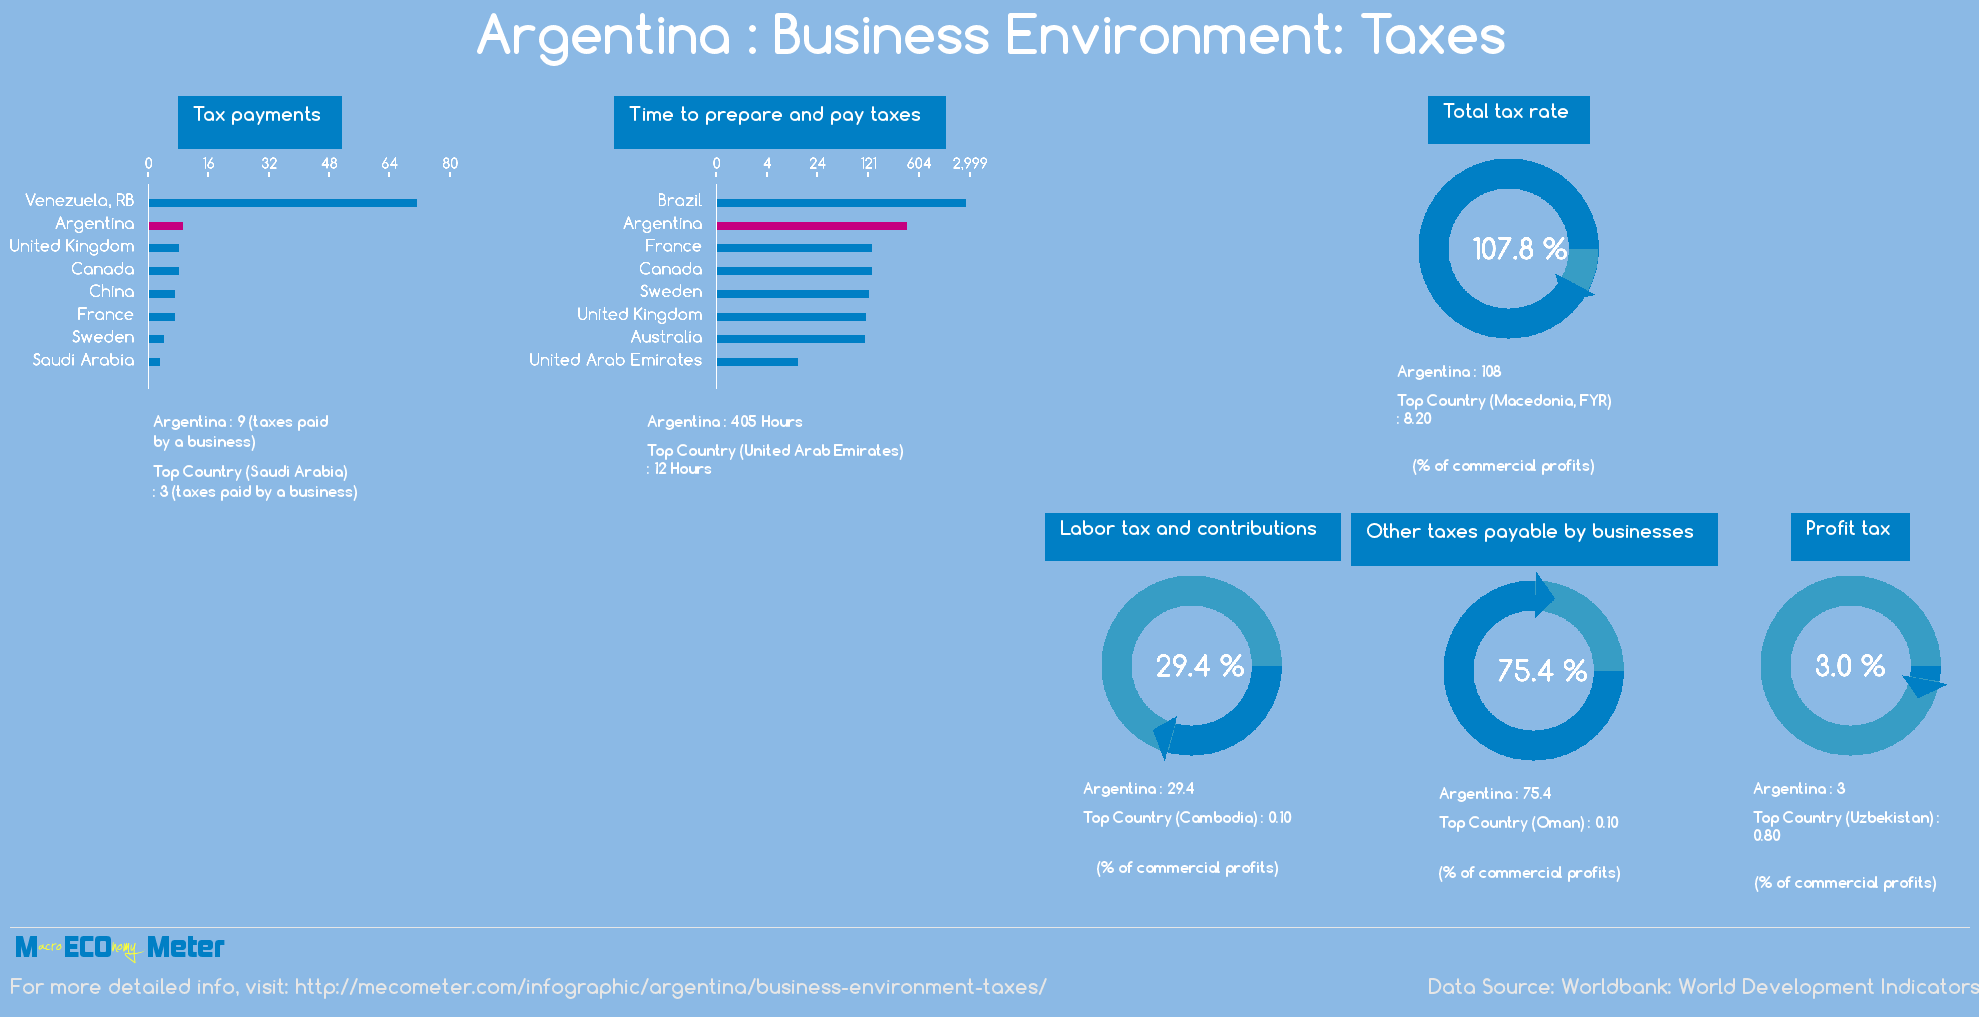 Argentina : Business Environment: Taxes